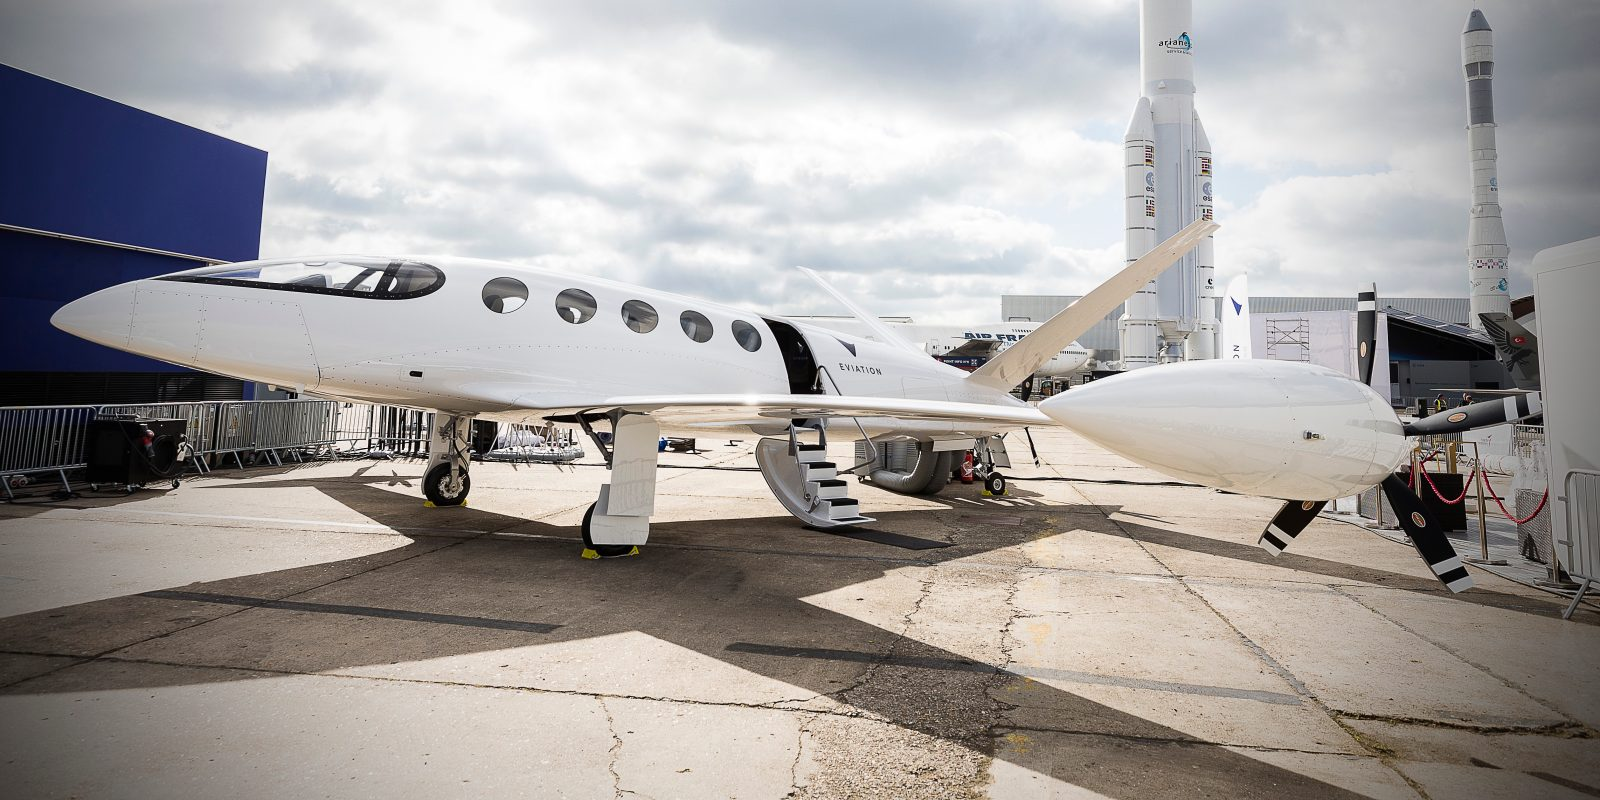 Eviation's all-electric Alice airplane coming to US regional airline Cape Air by 2022